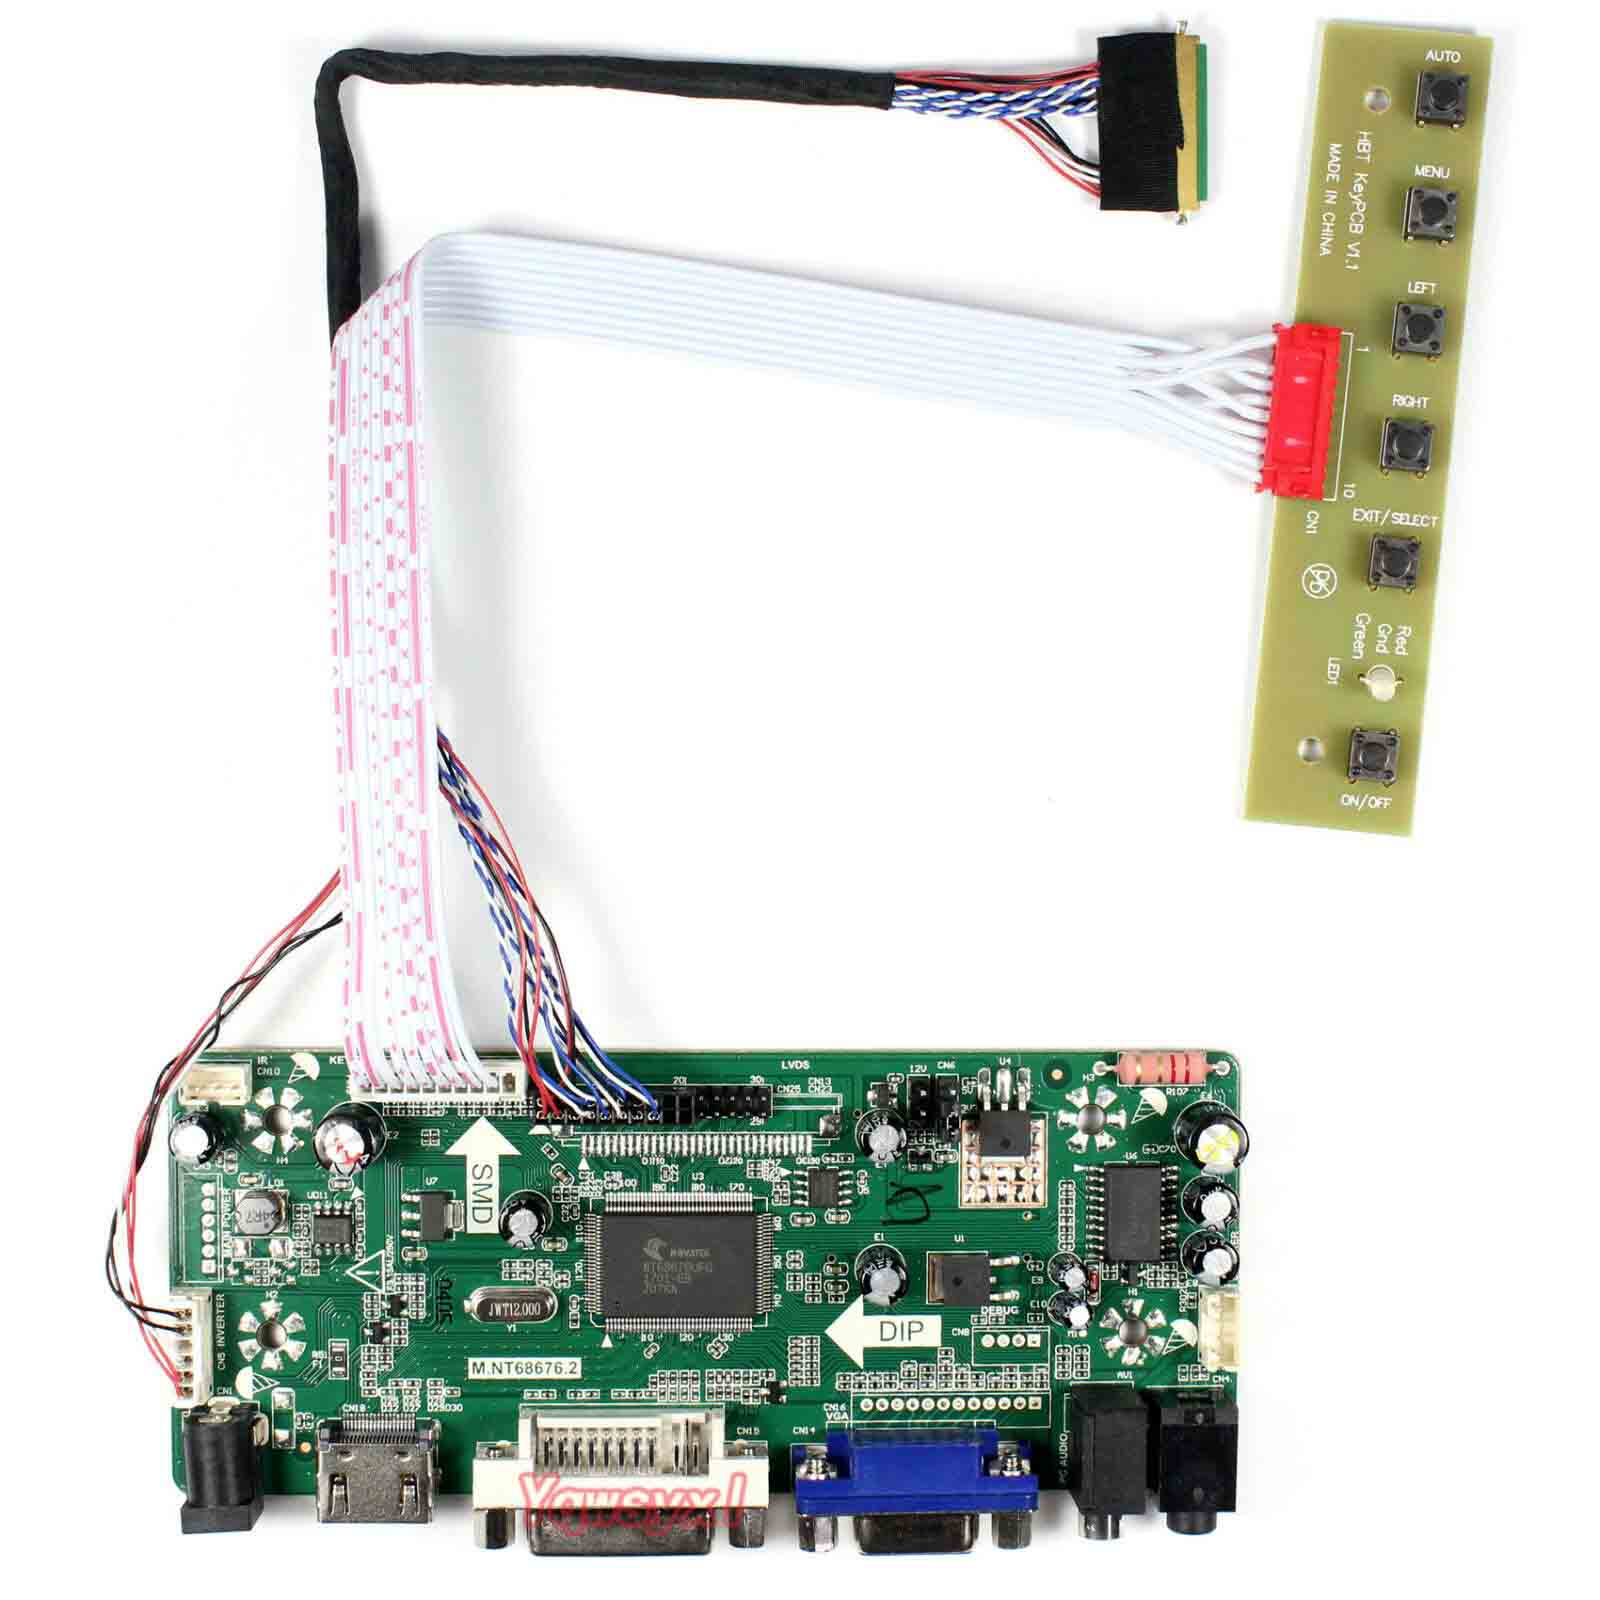 Yqwsyxl Control Board Kit For LTN140AT26-T01 LTN140AT26-L01 LTN140AT26 HDMI+DVI+VGA LCD LED Screen Controller Board Driver